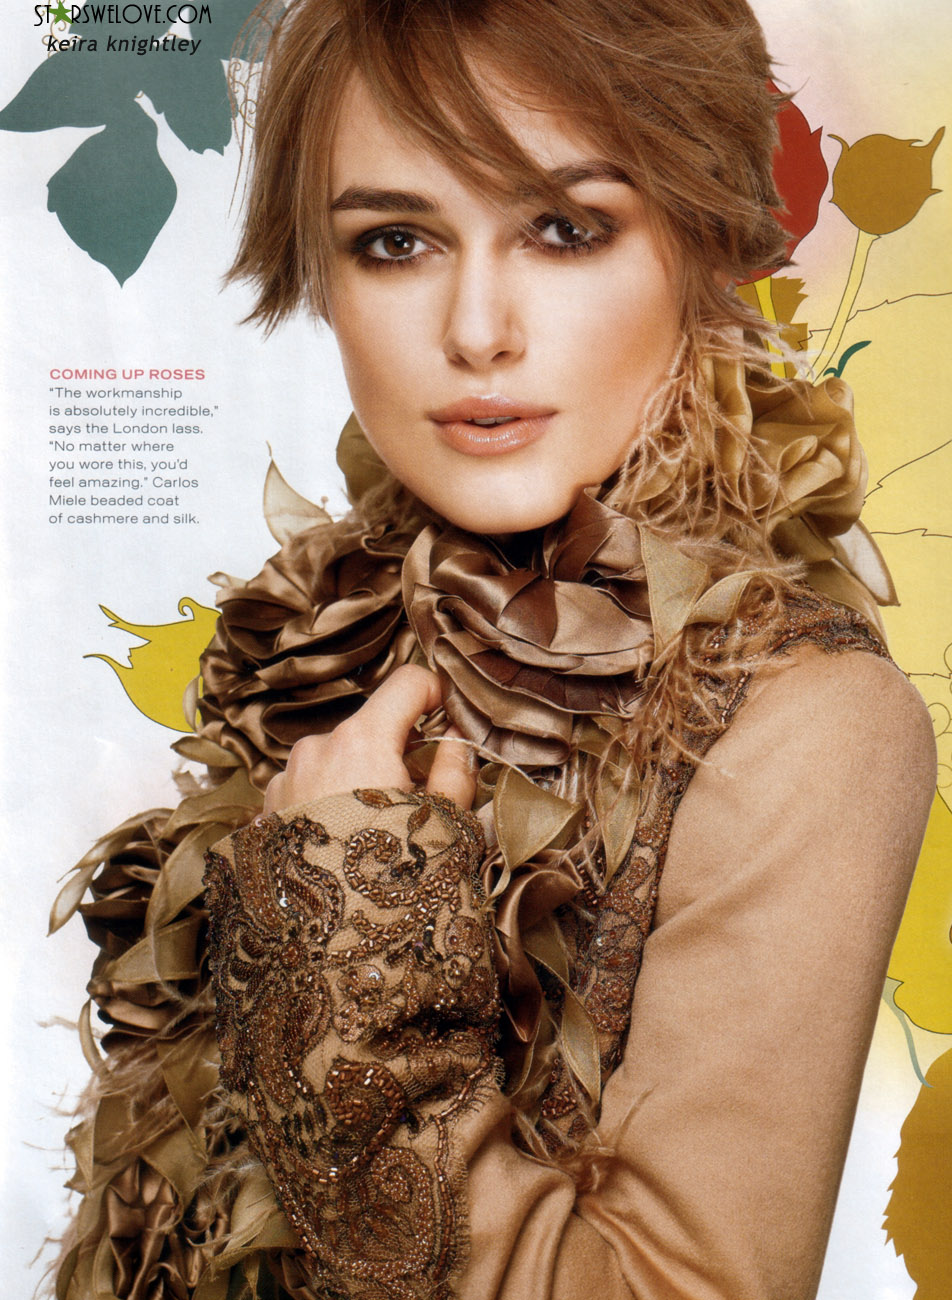 Keira Knightley photo (keira_knightley030, 952 x 1300 pixels, 350 kB)